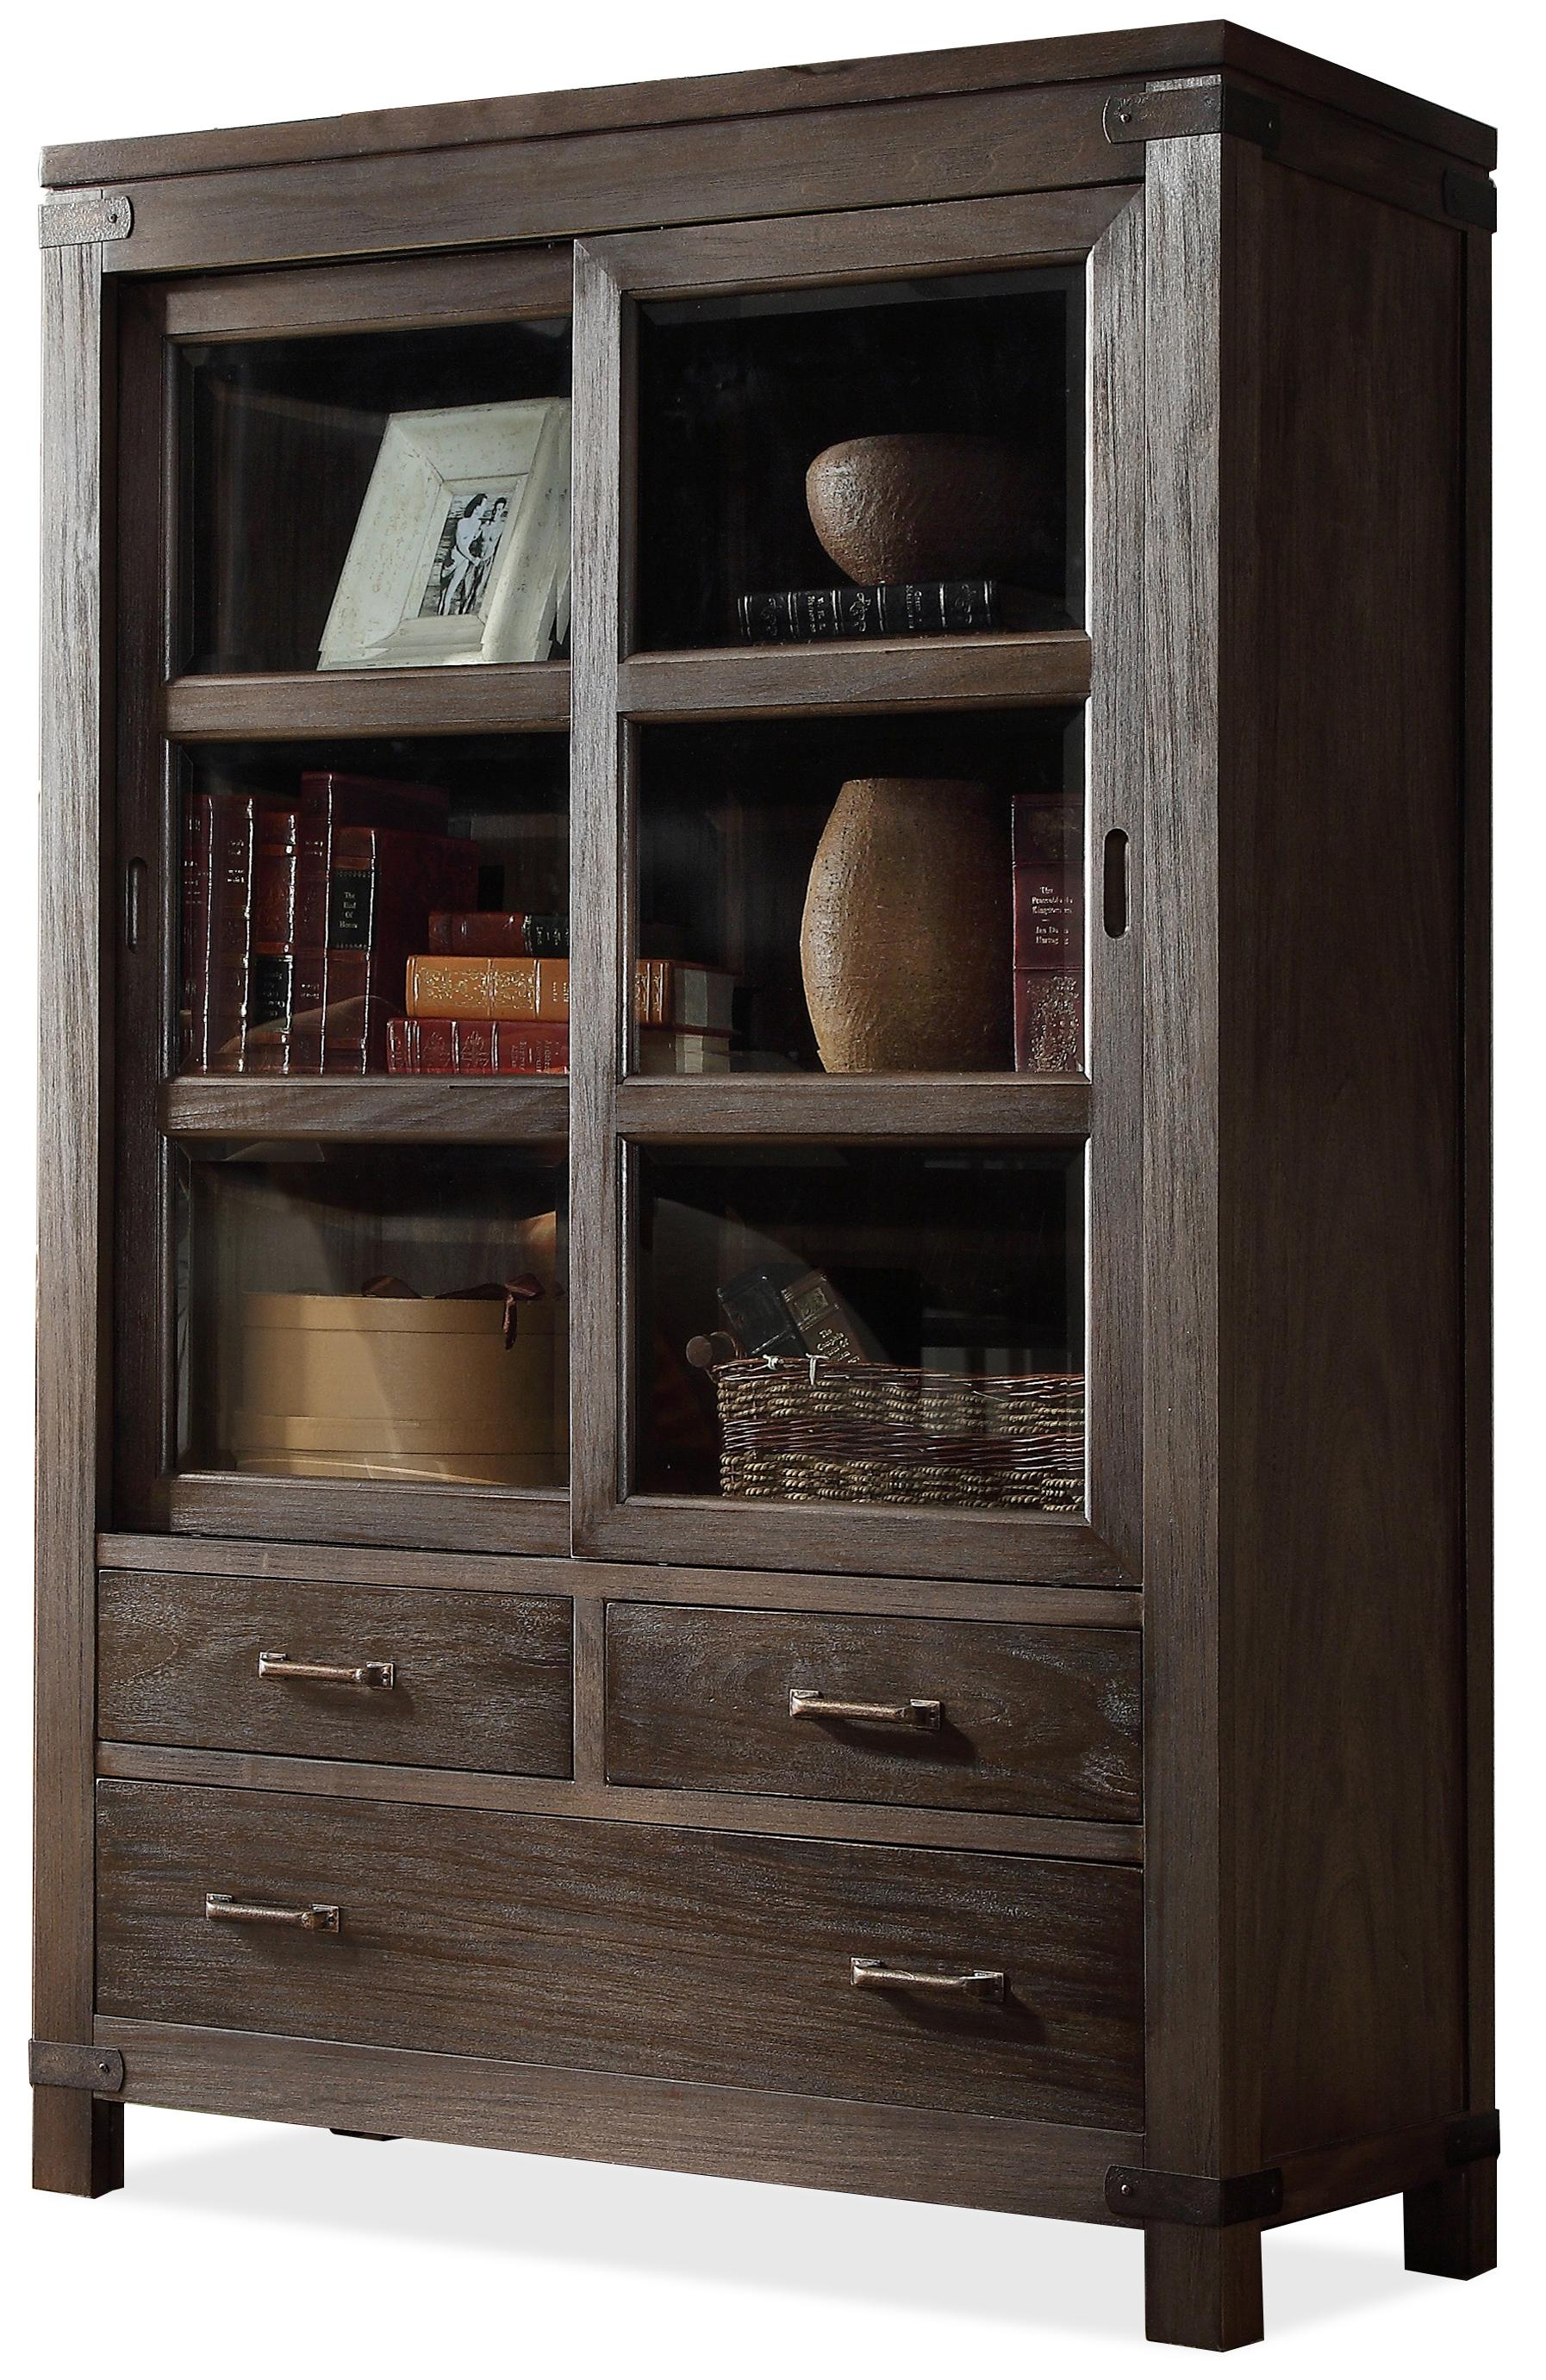 silver today door hill home doors orchid bowers garden sliding in pine with bookcase shipping free overstock rustic product bookcases